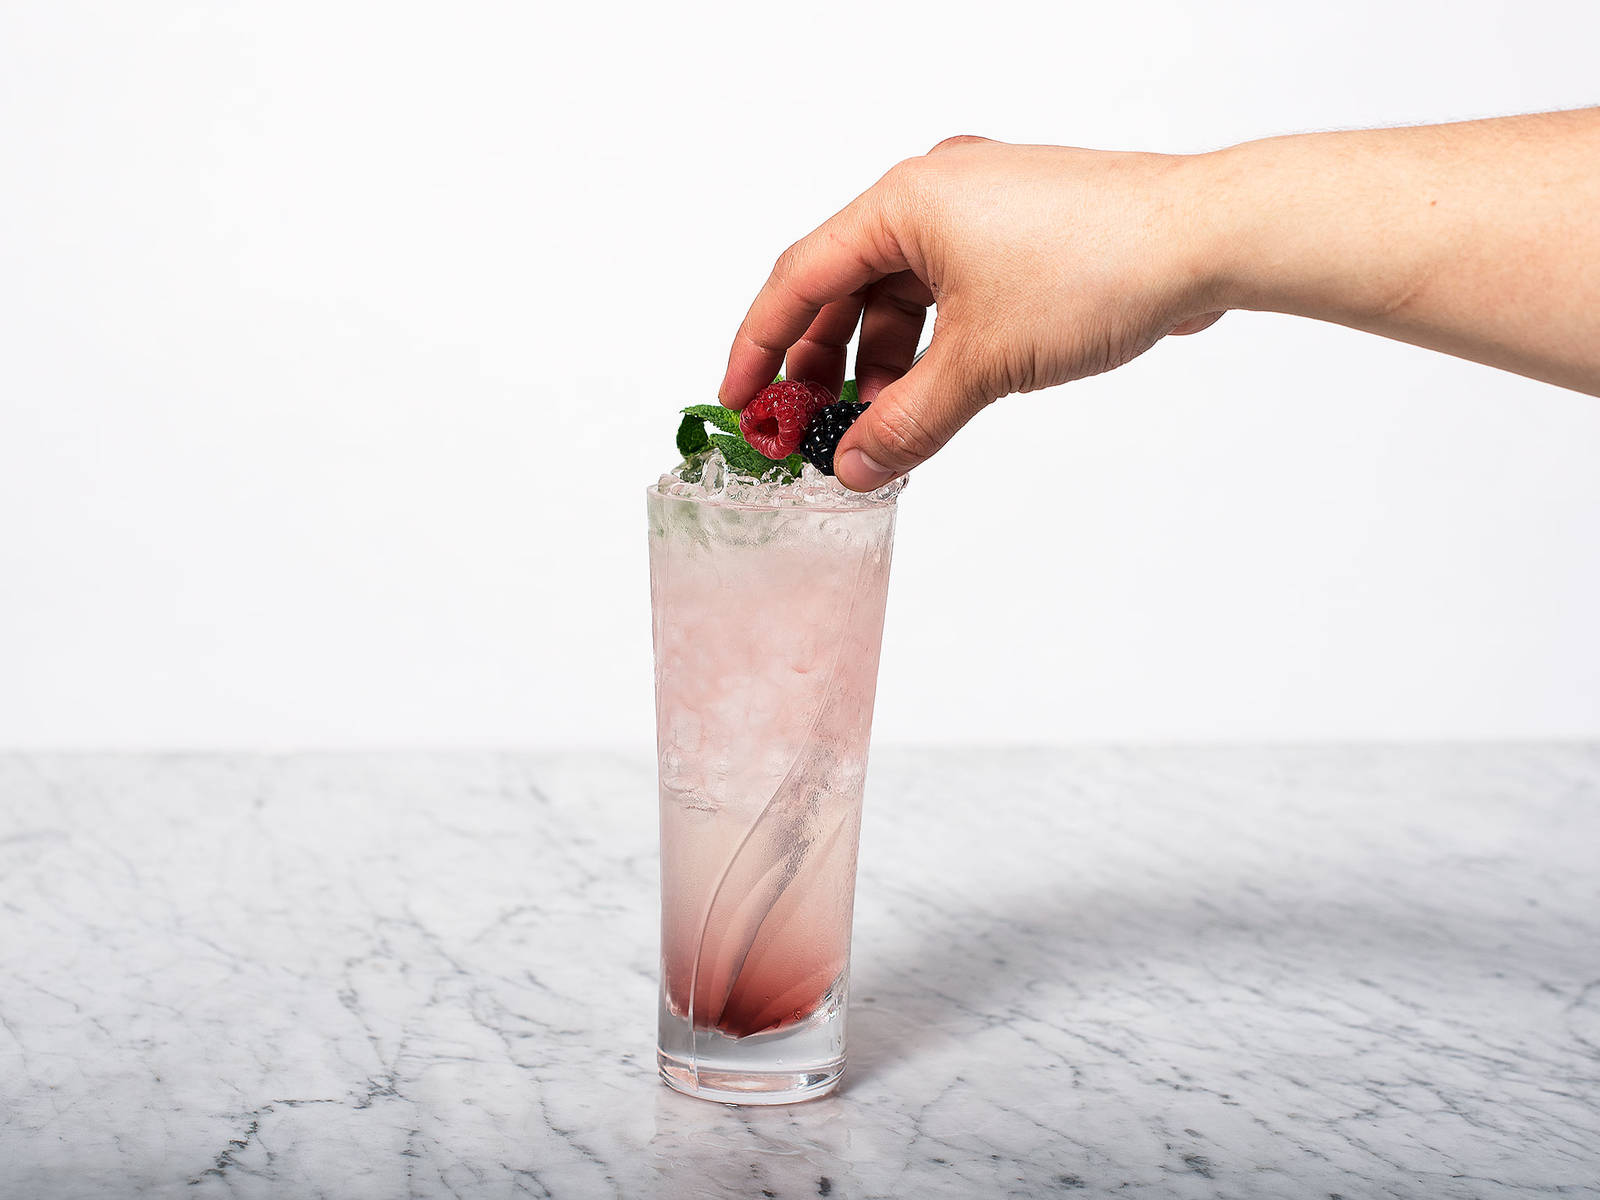 Garnish with mint and berries. Serve with a straw and enjoy!